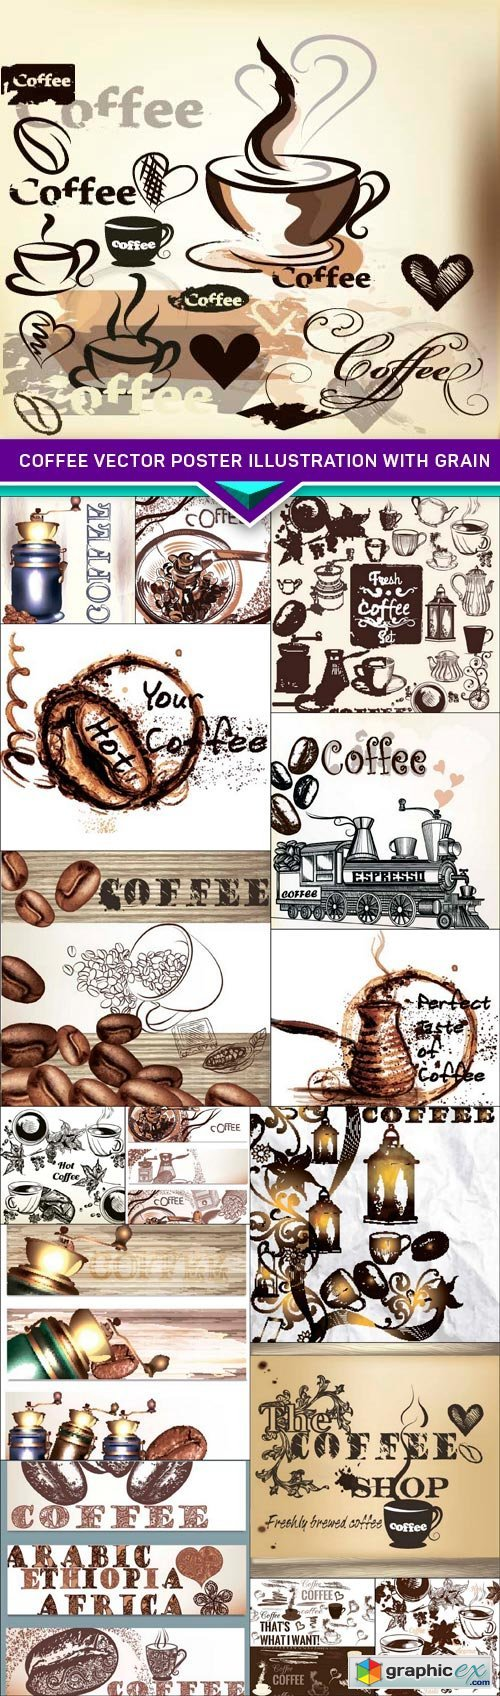 Coffee vector poster illustration with grain 16x EPS